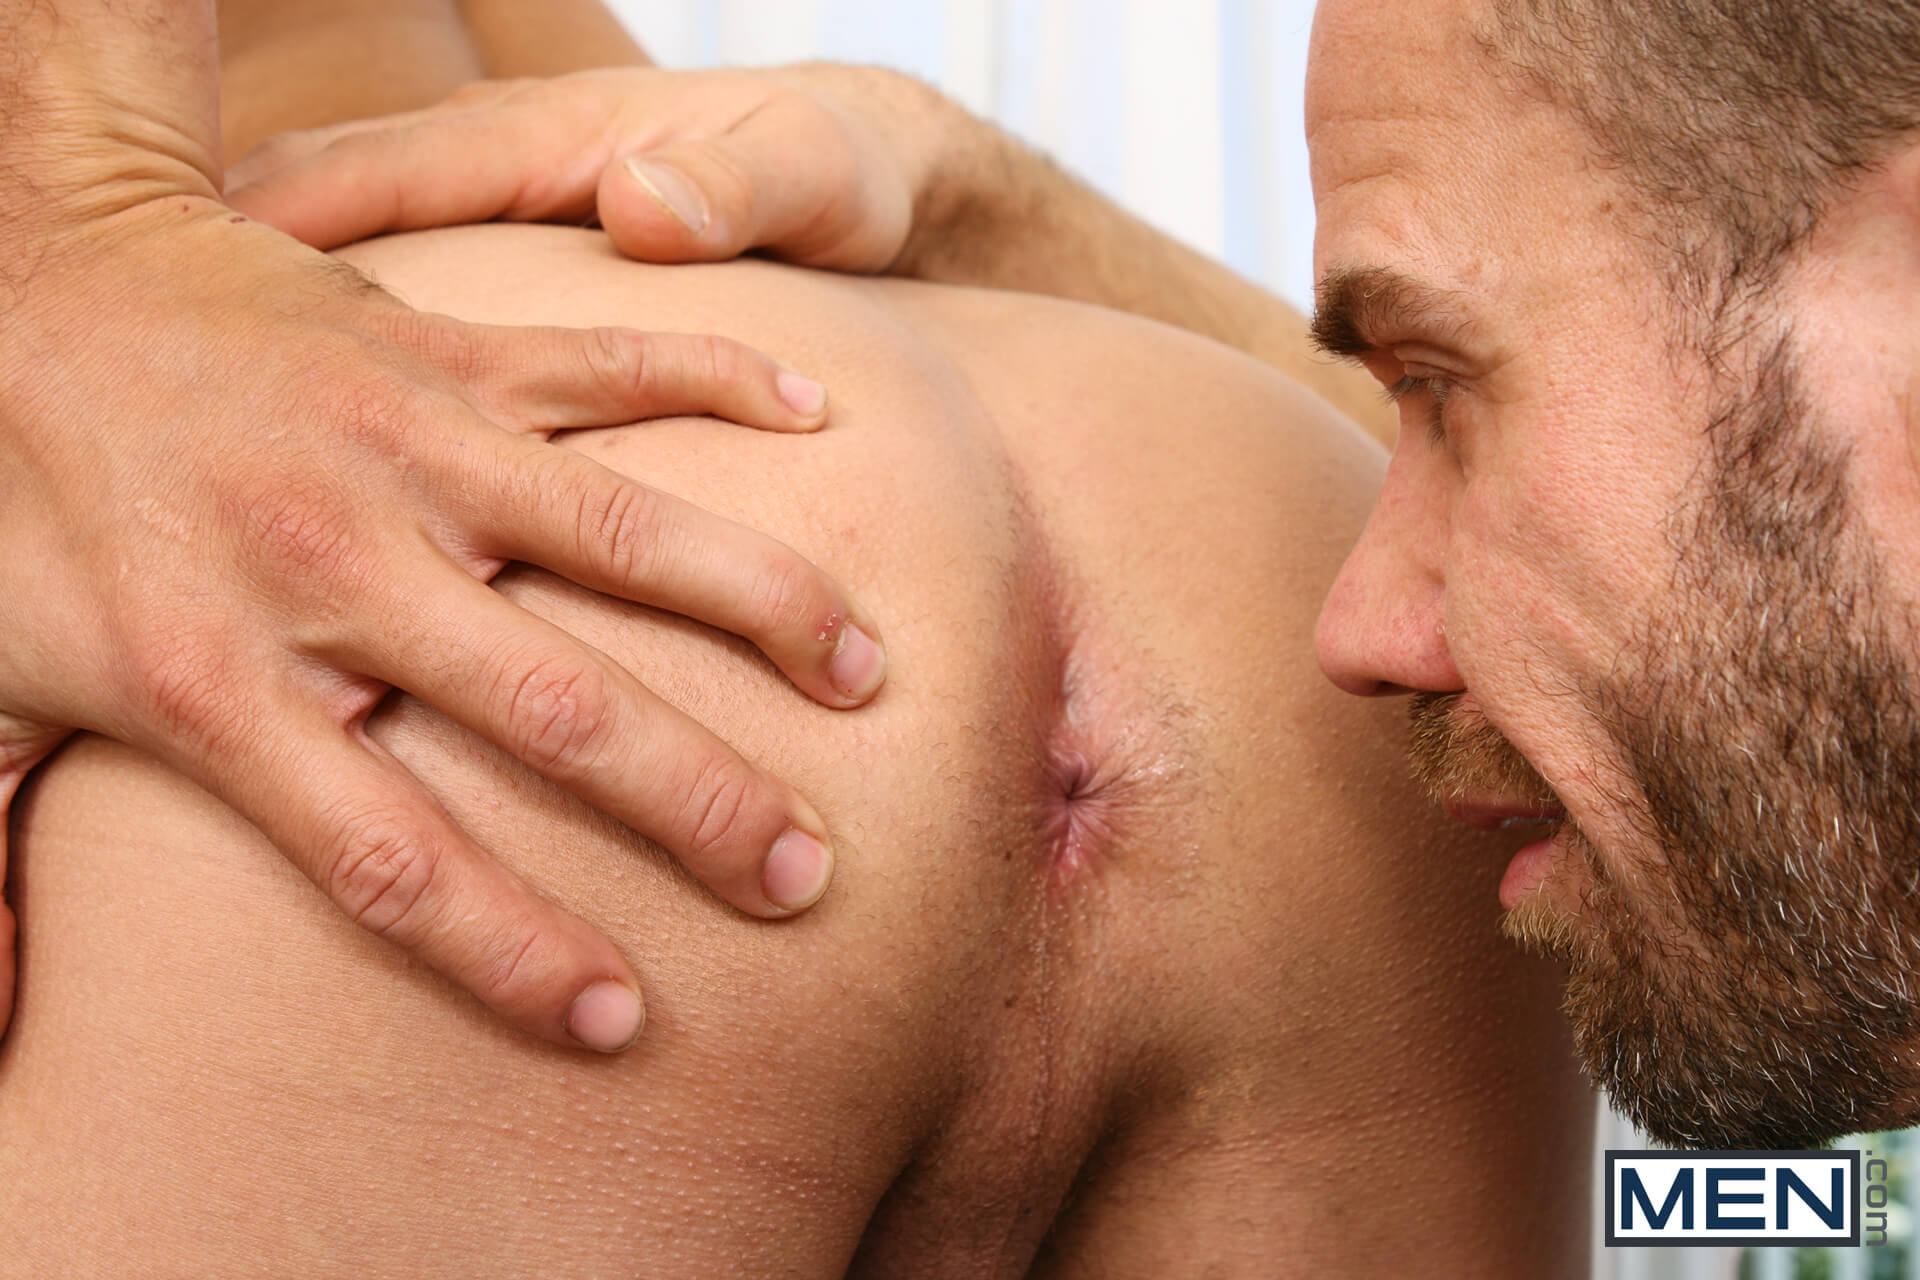 men drill my hole son swap part 5 nicoli cole ryan wilcox gay porn blog image 14